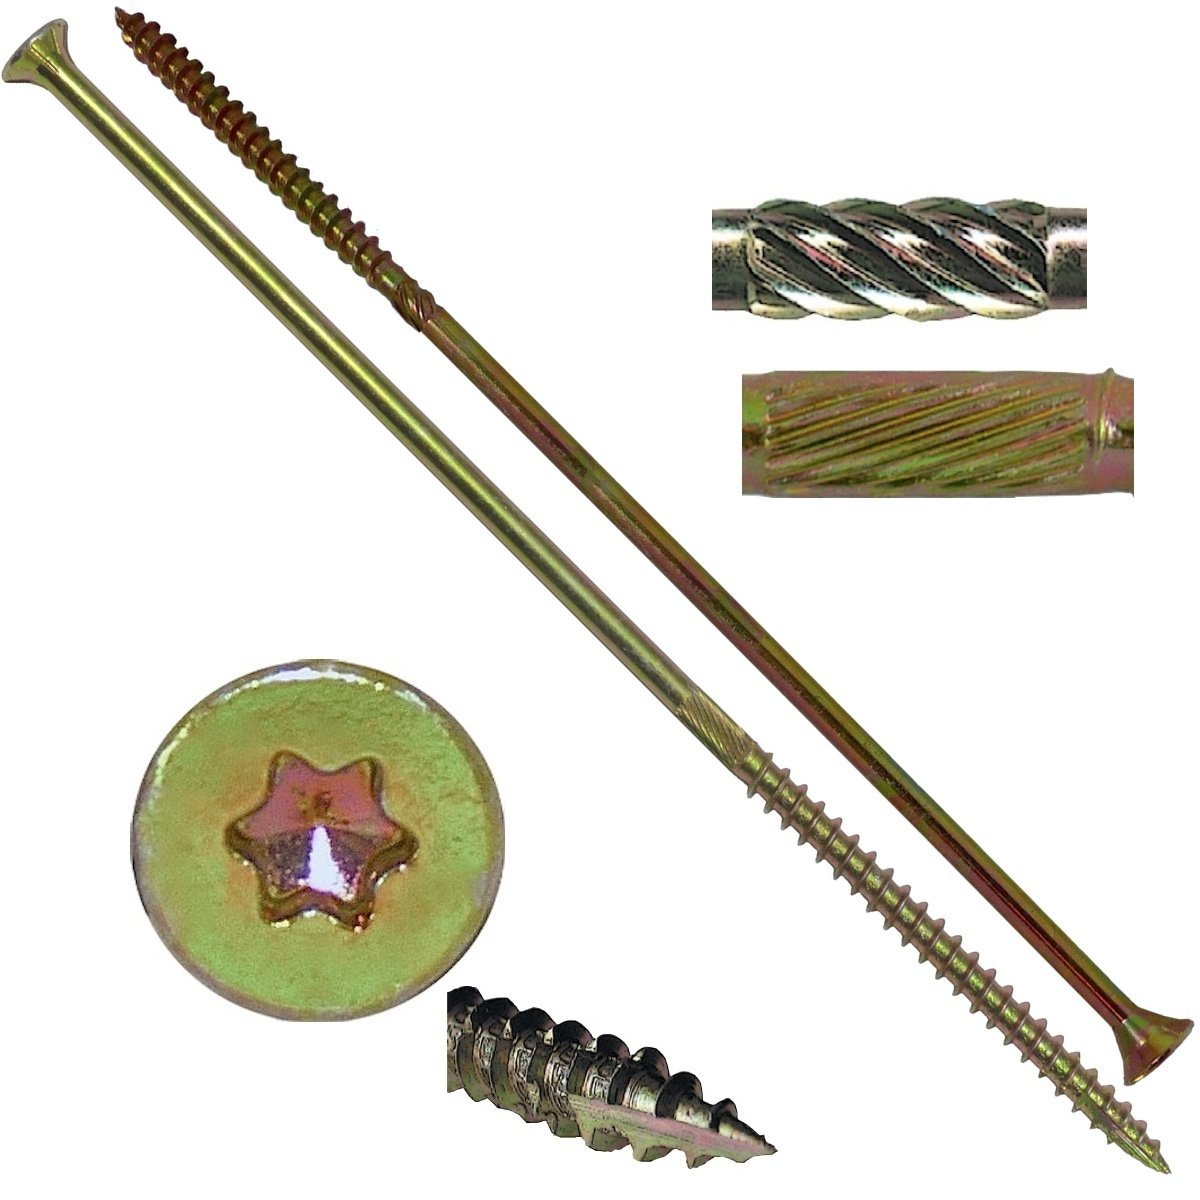 "#15x14"" Gold Star Wood Screw Torx/Star Drive Head (1 Pound) - Multipurpose Torx/Star Drive Wood Screws"